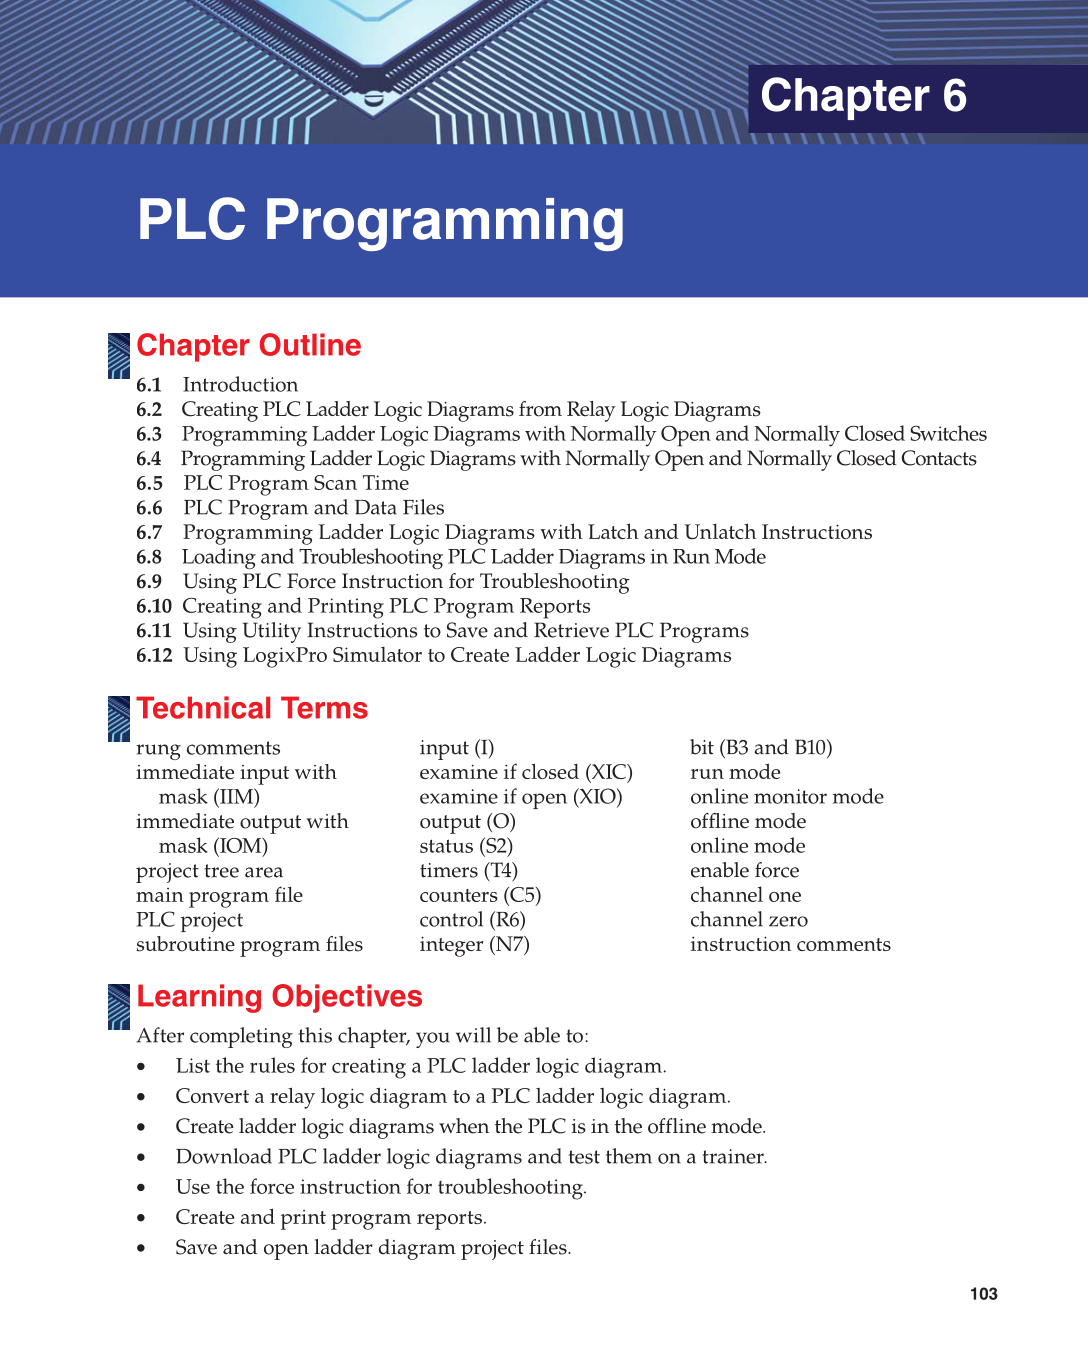 Programmable Logic Controllers 3rd Edition Page 103 103 Of 414